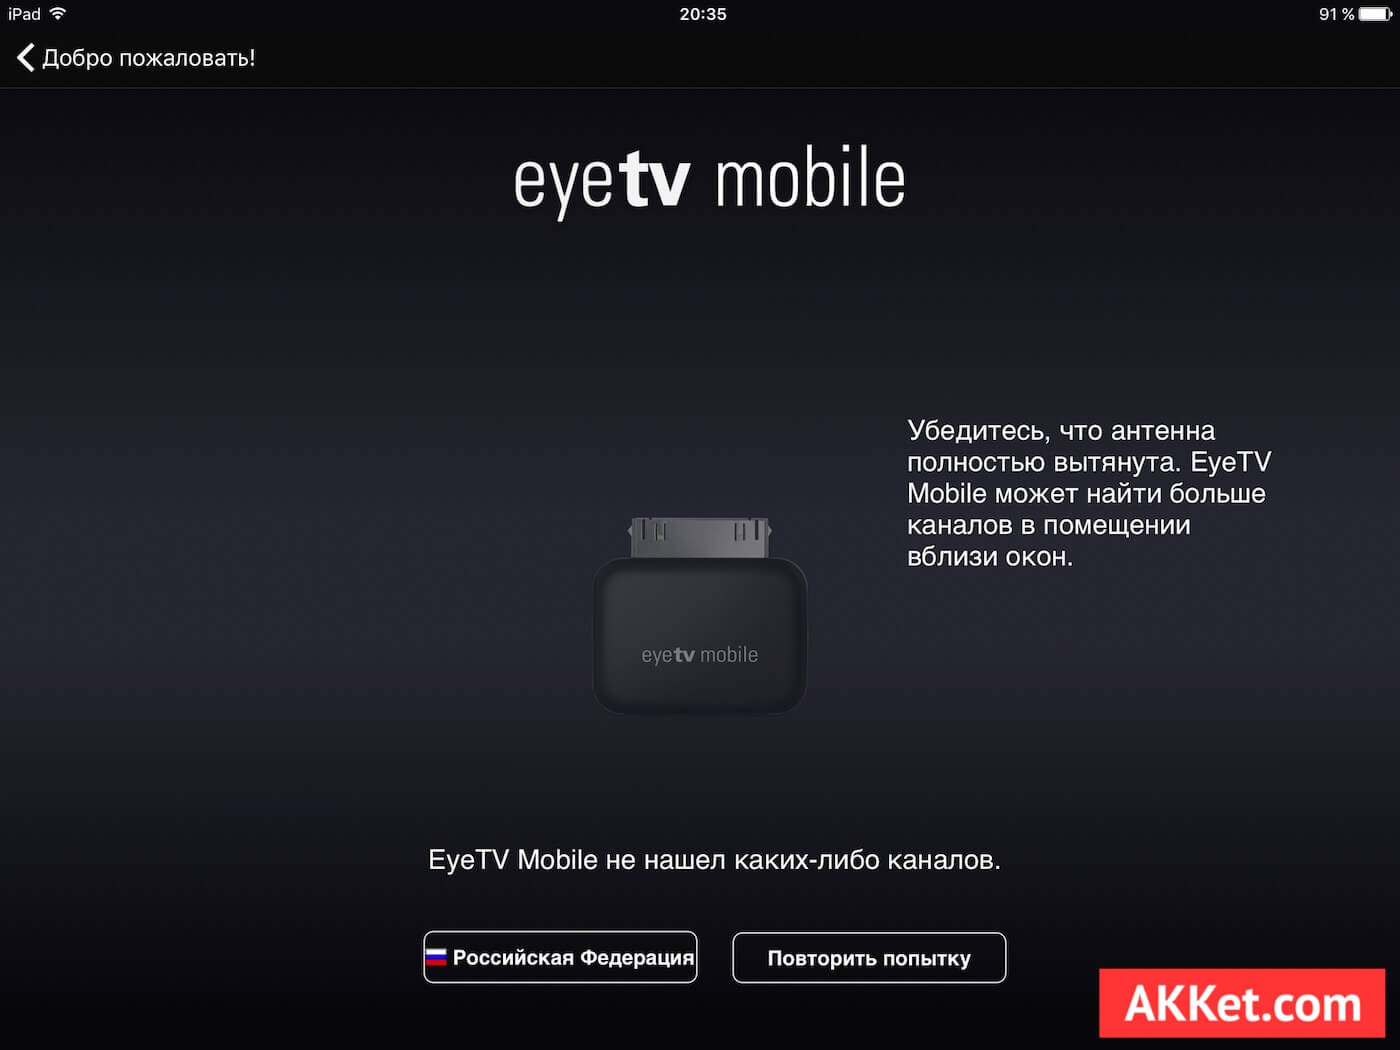 EyeTV mobile iPad iPhone Android app store 13